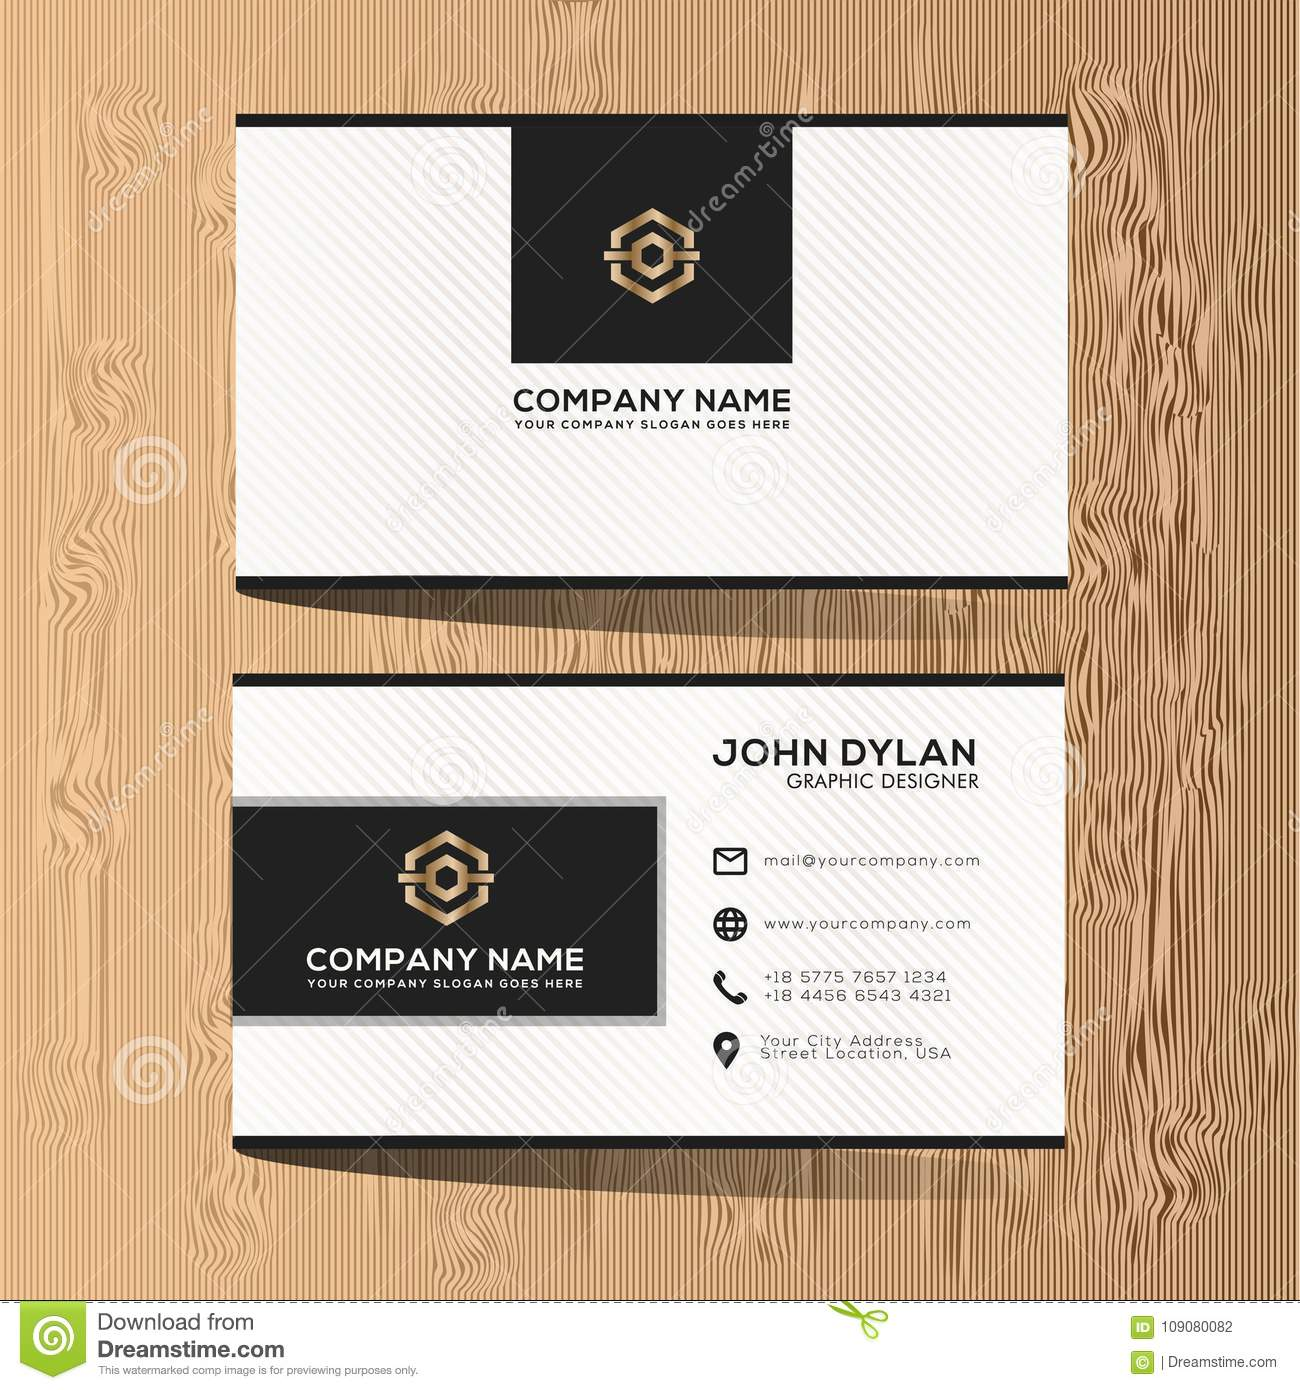 Classy Company Business Card Template 000127 Template Catalog